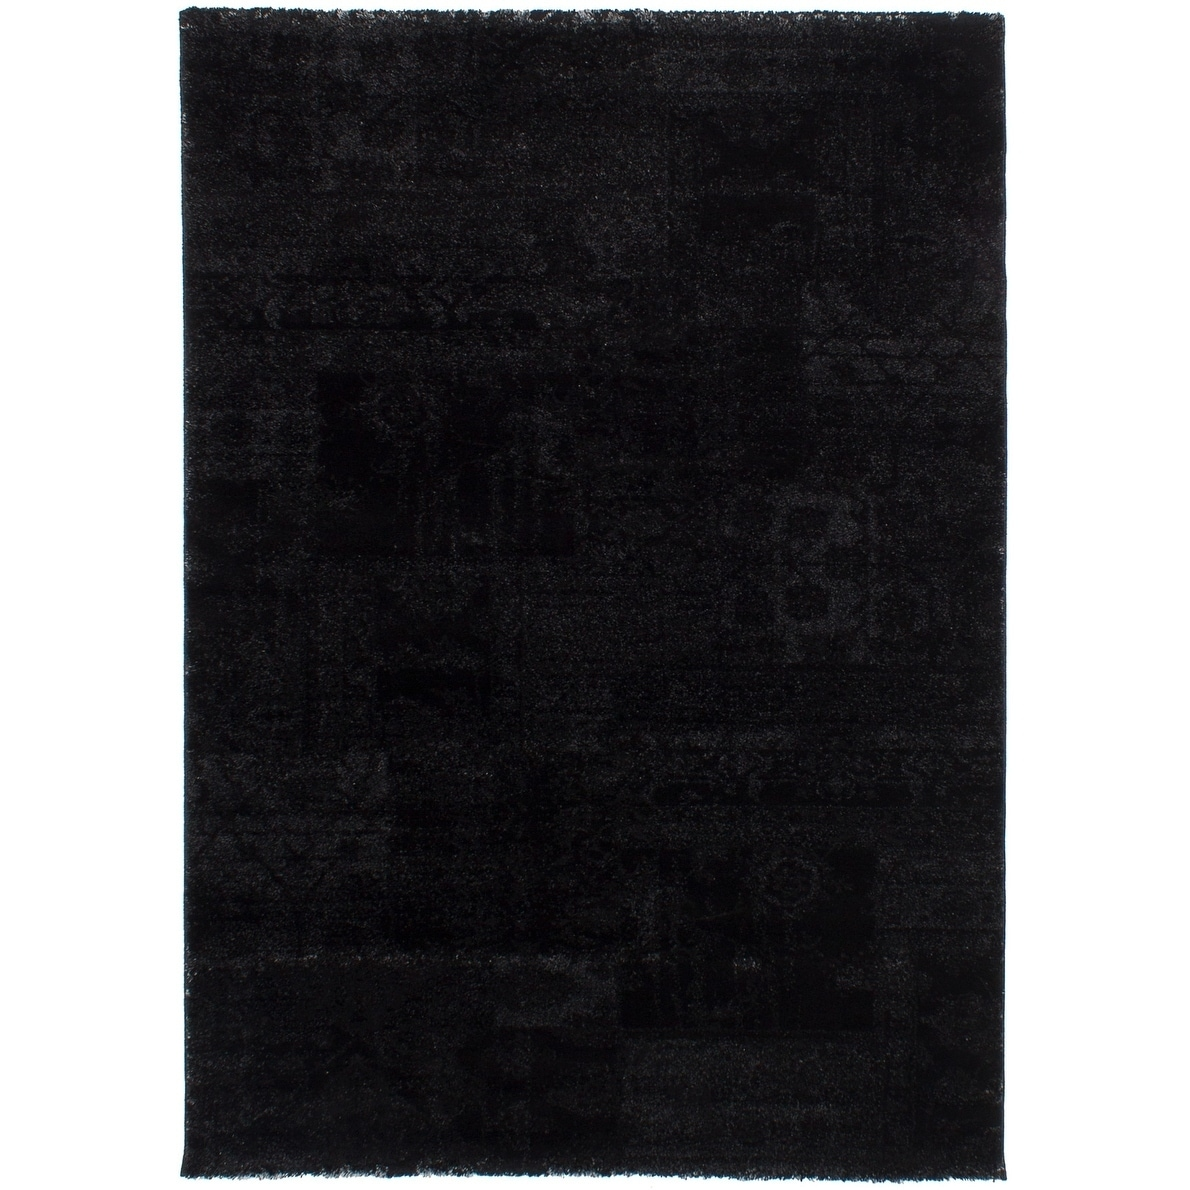 ECARPETGALLERY Power Loomed Soho Black Polypropylene Shag - 55 x 79